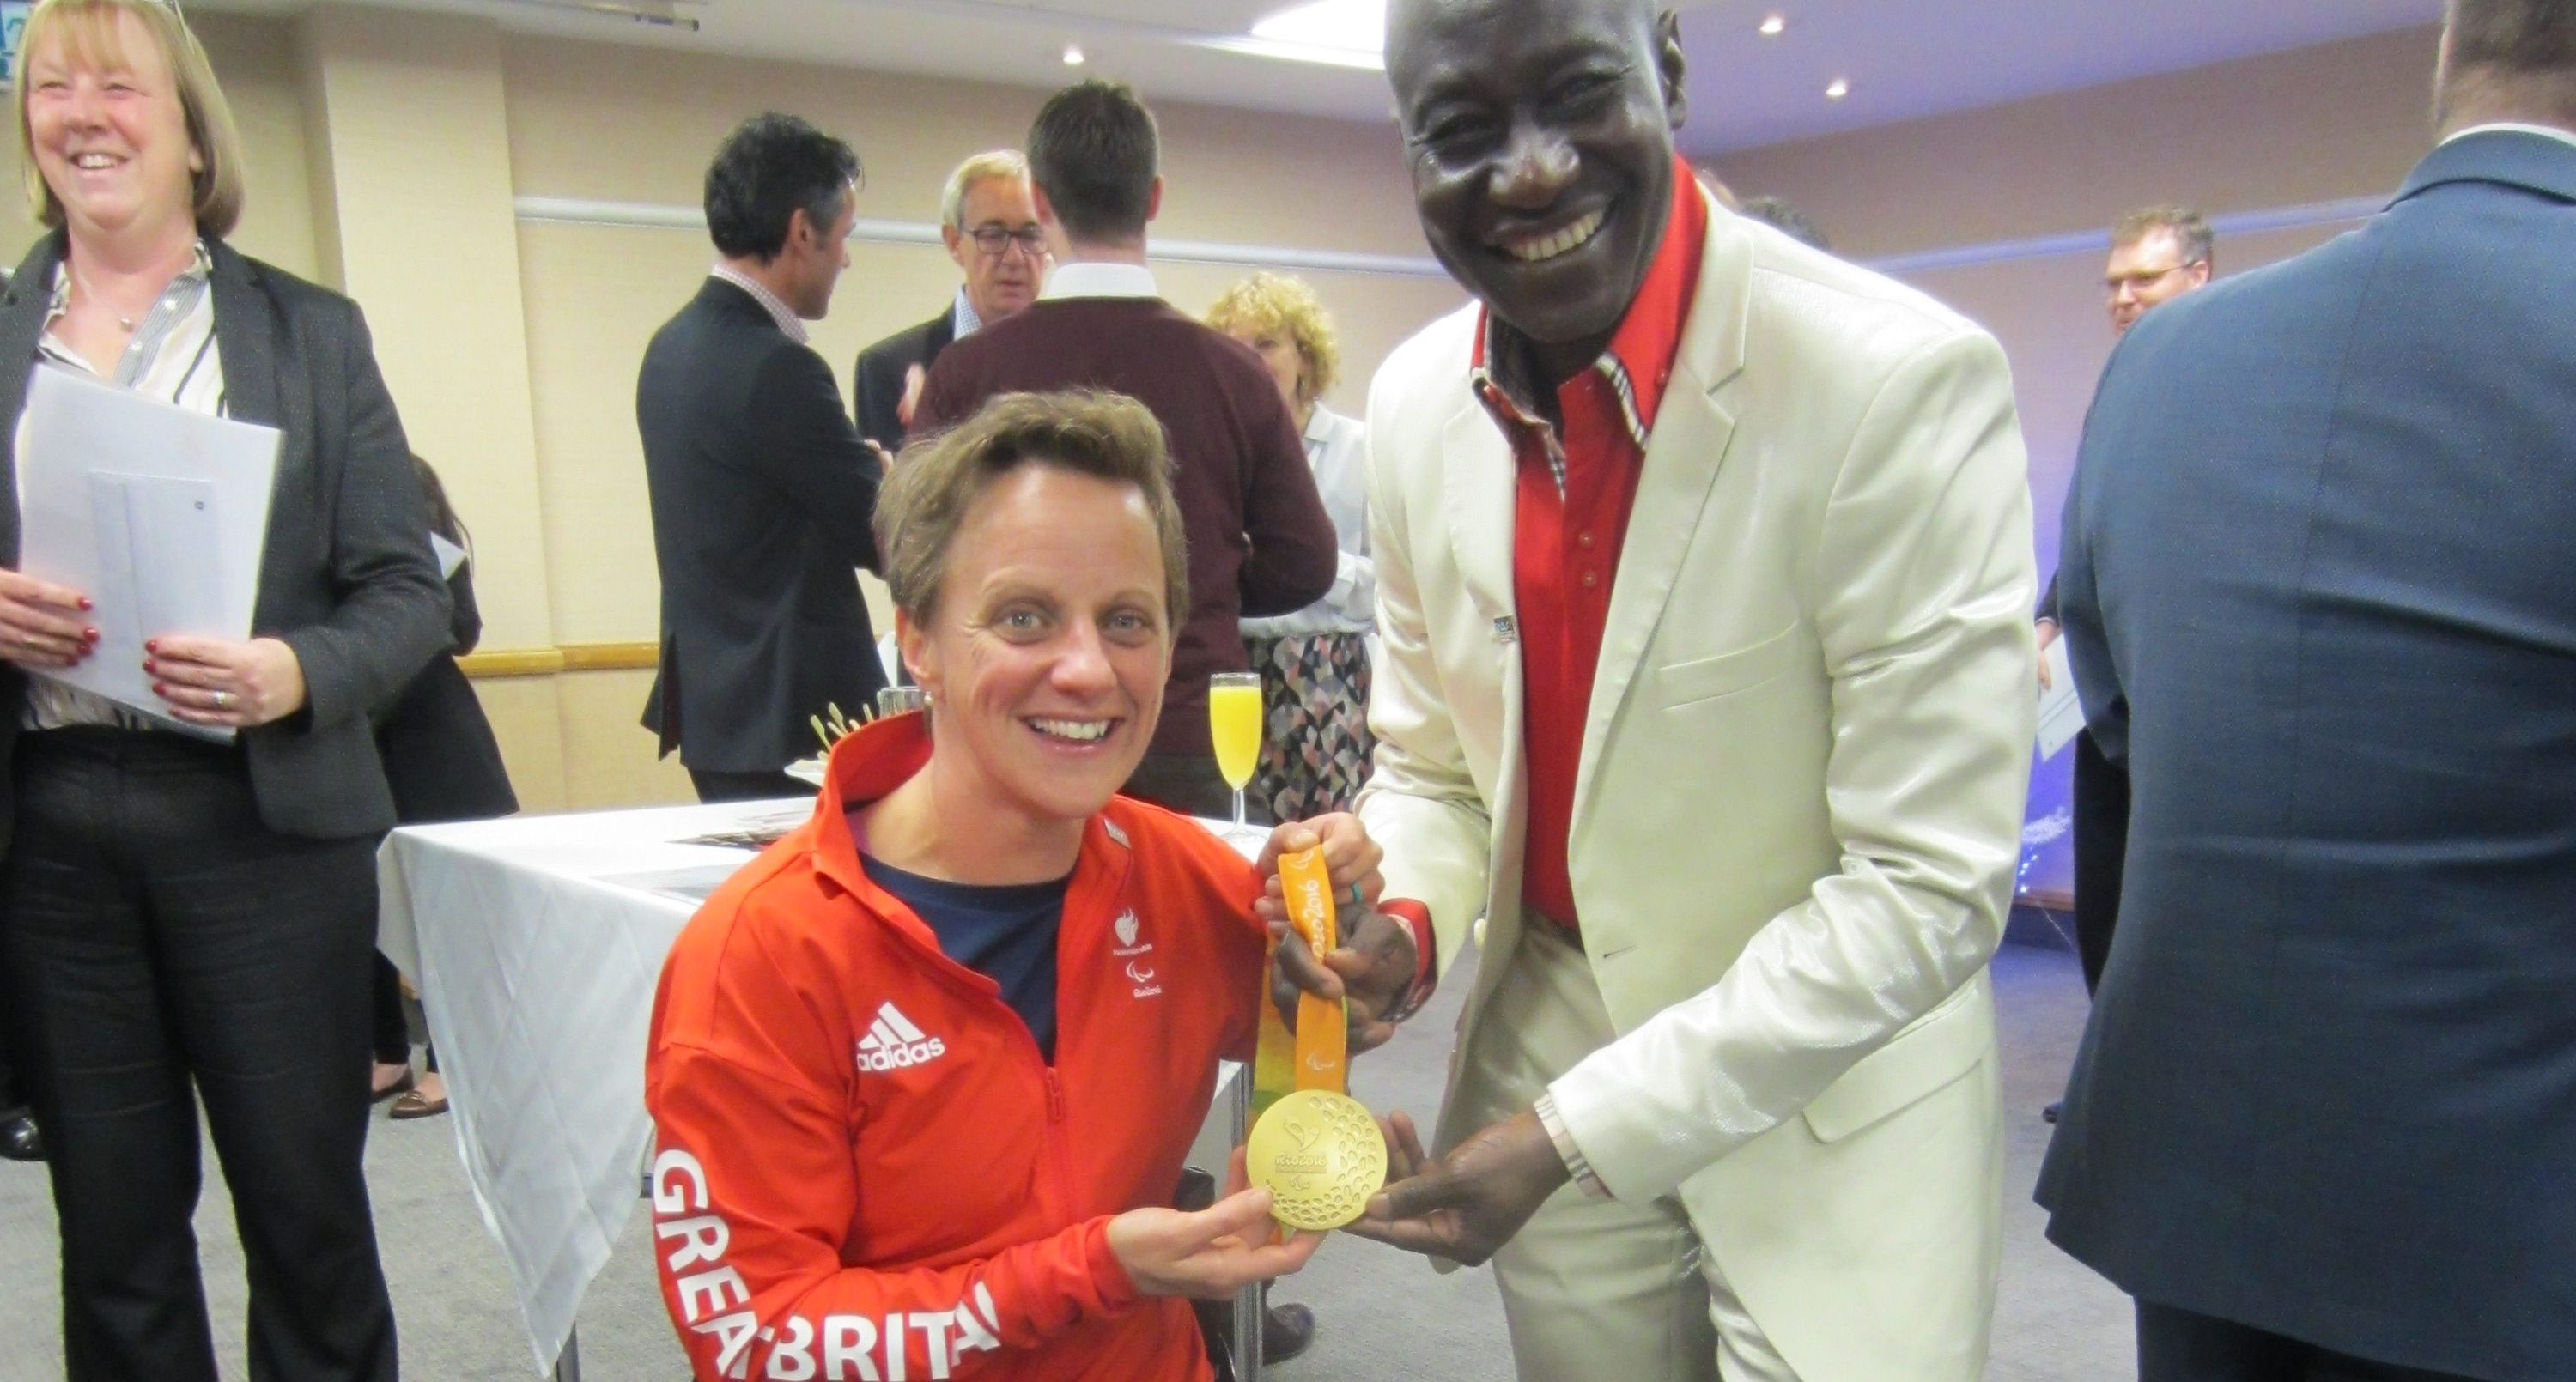 SEM's Maxwell Ayamba meets gold medal winning paralympian Emma Wiggs at a special event hosted by The International Sports Federation for Persons with Intellectual Disability (INAS).